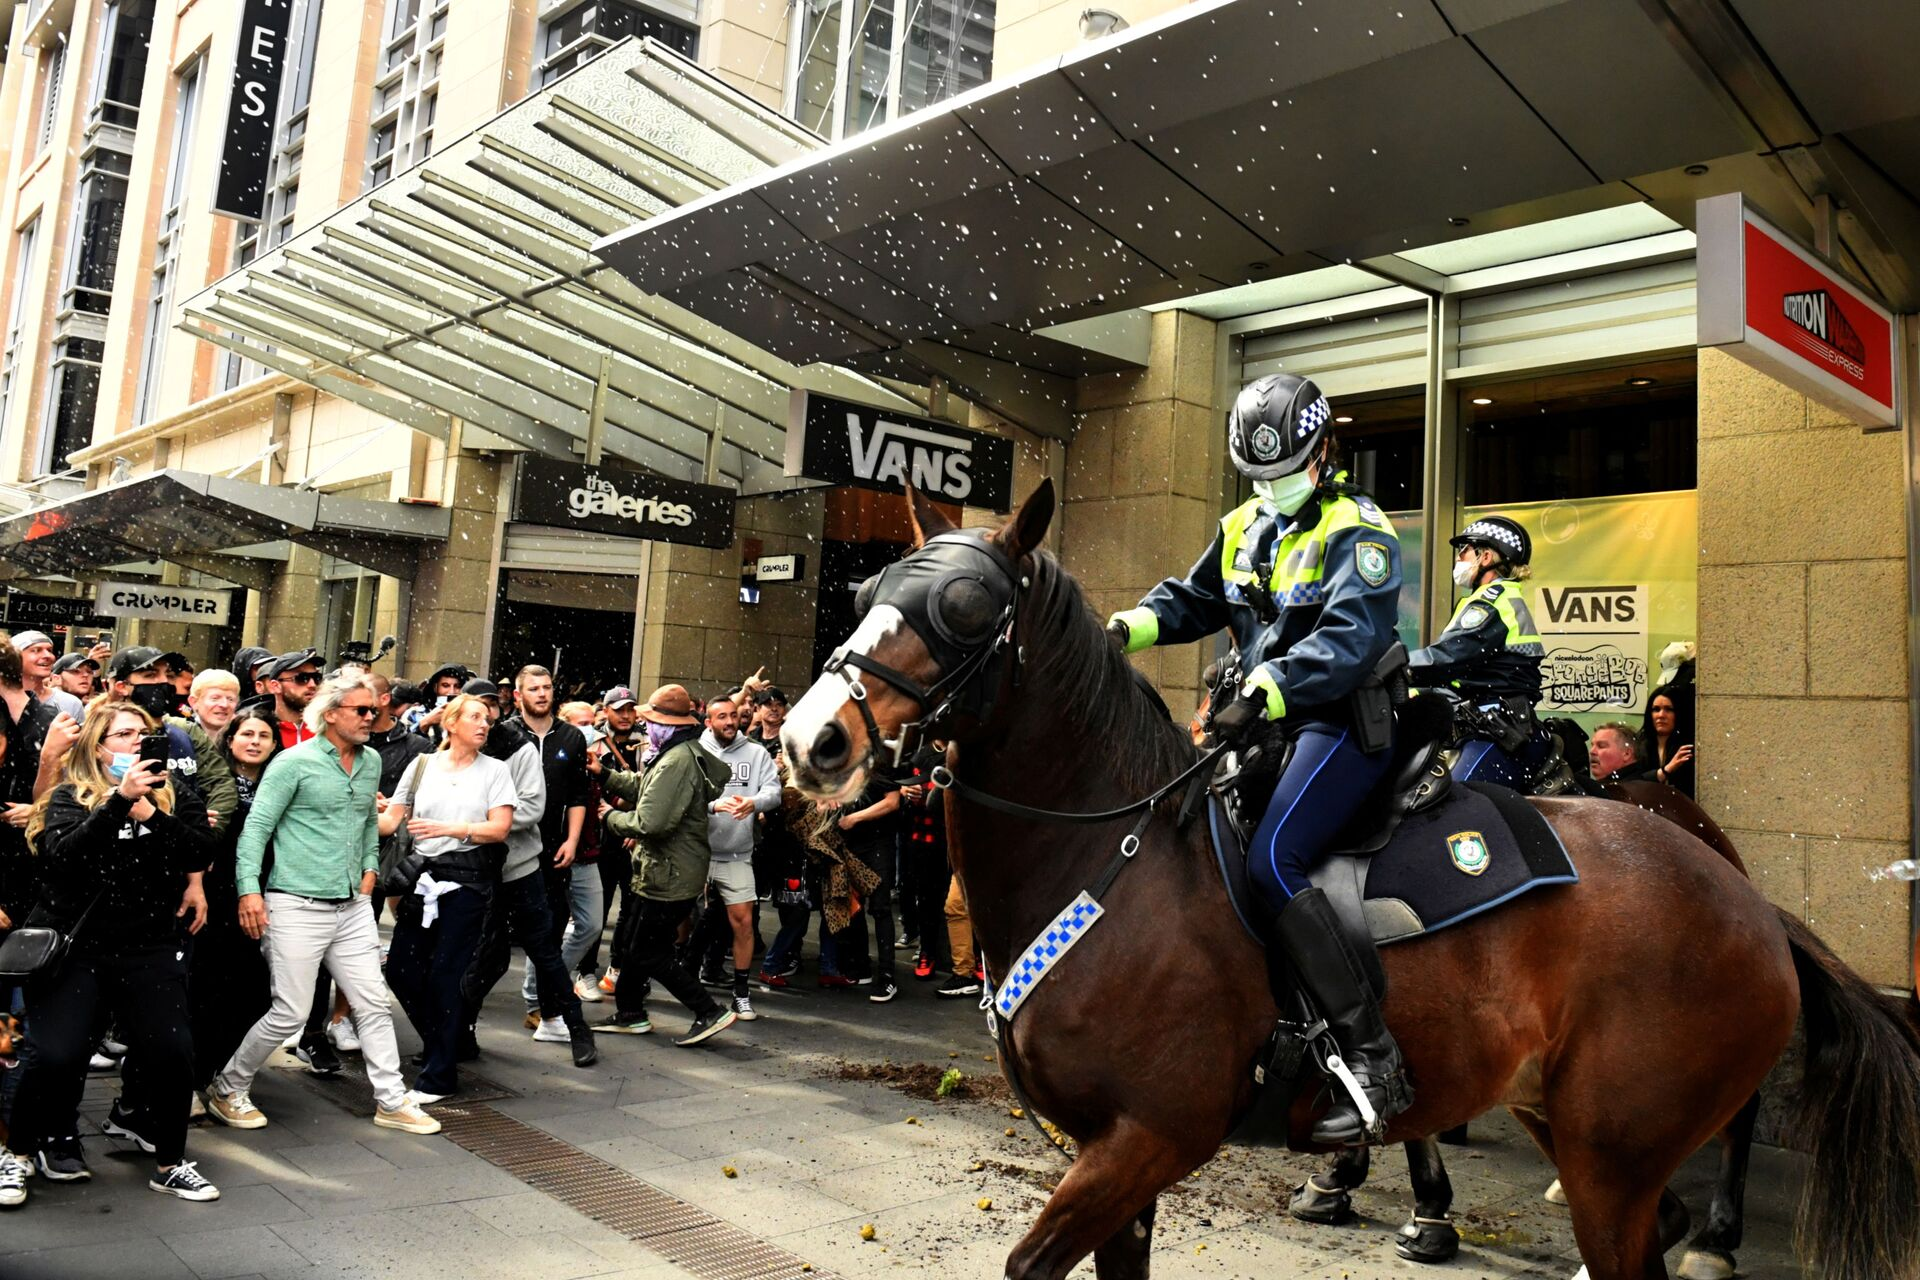 Protesters throw plastic bottles and pot plants at mounted police in the city centre during an anti-lockdown rally as an outbreak of the coronavirus disease (COVID-19) affects Sydney, Australia, July 24, 2021.   - Sputnik International, 1920, 07.09.2021